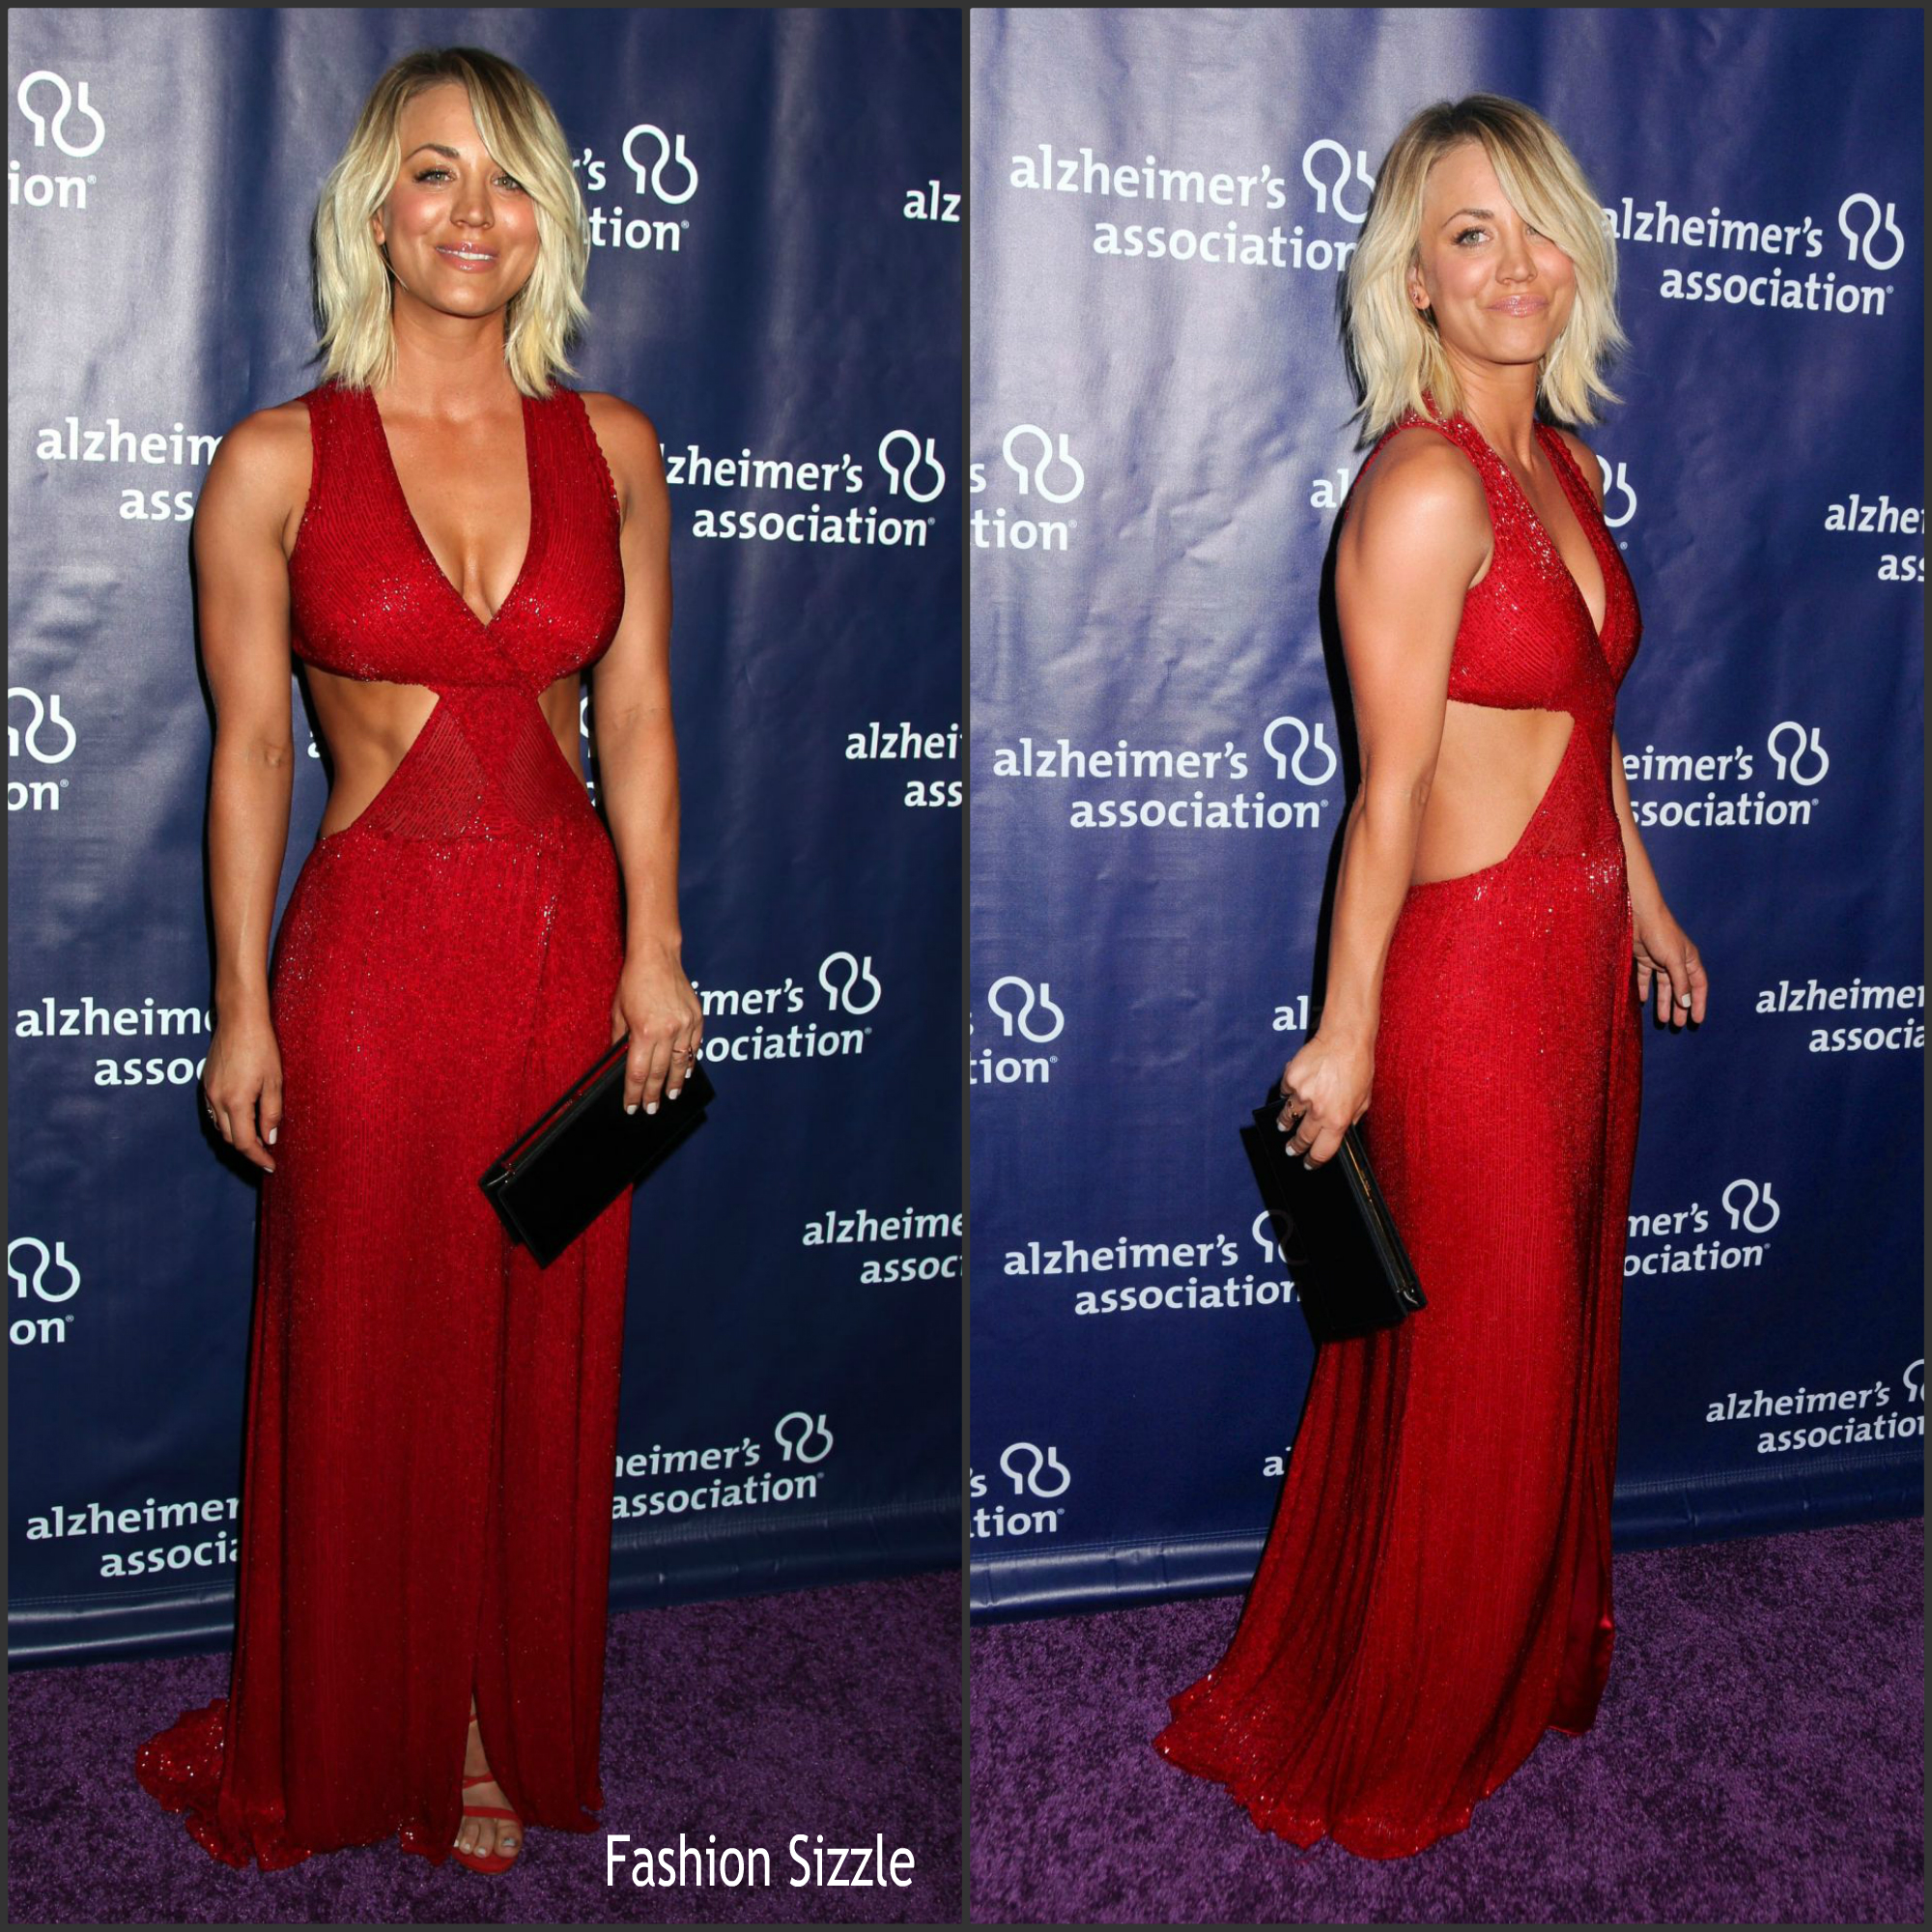 kaley-cuoco-in-naeem-khan-2016-alzheimers-association-a-night-at-sardis-